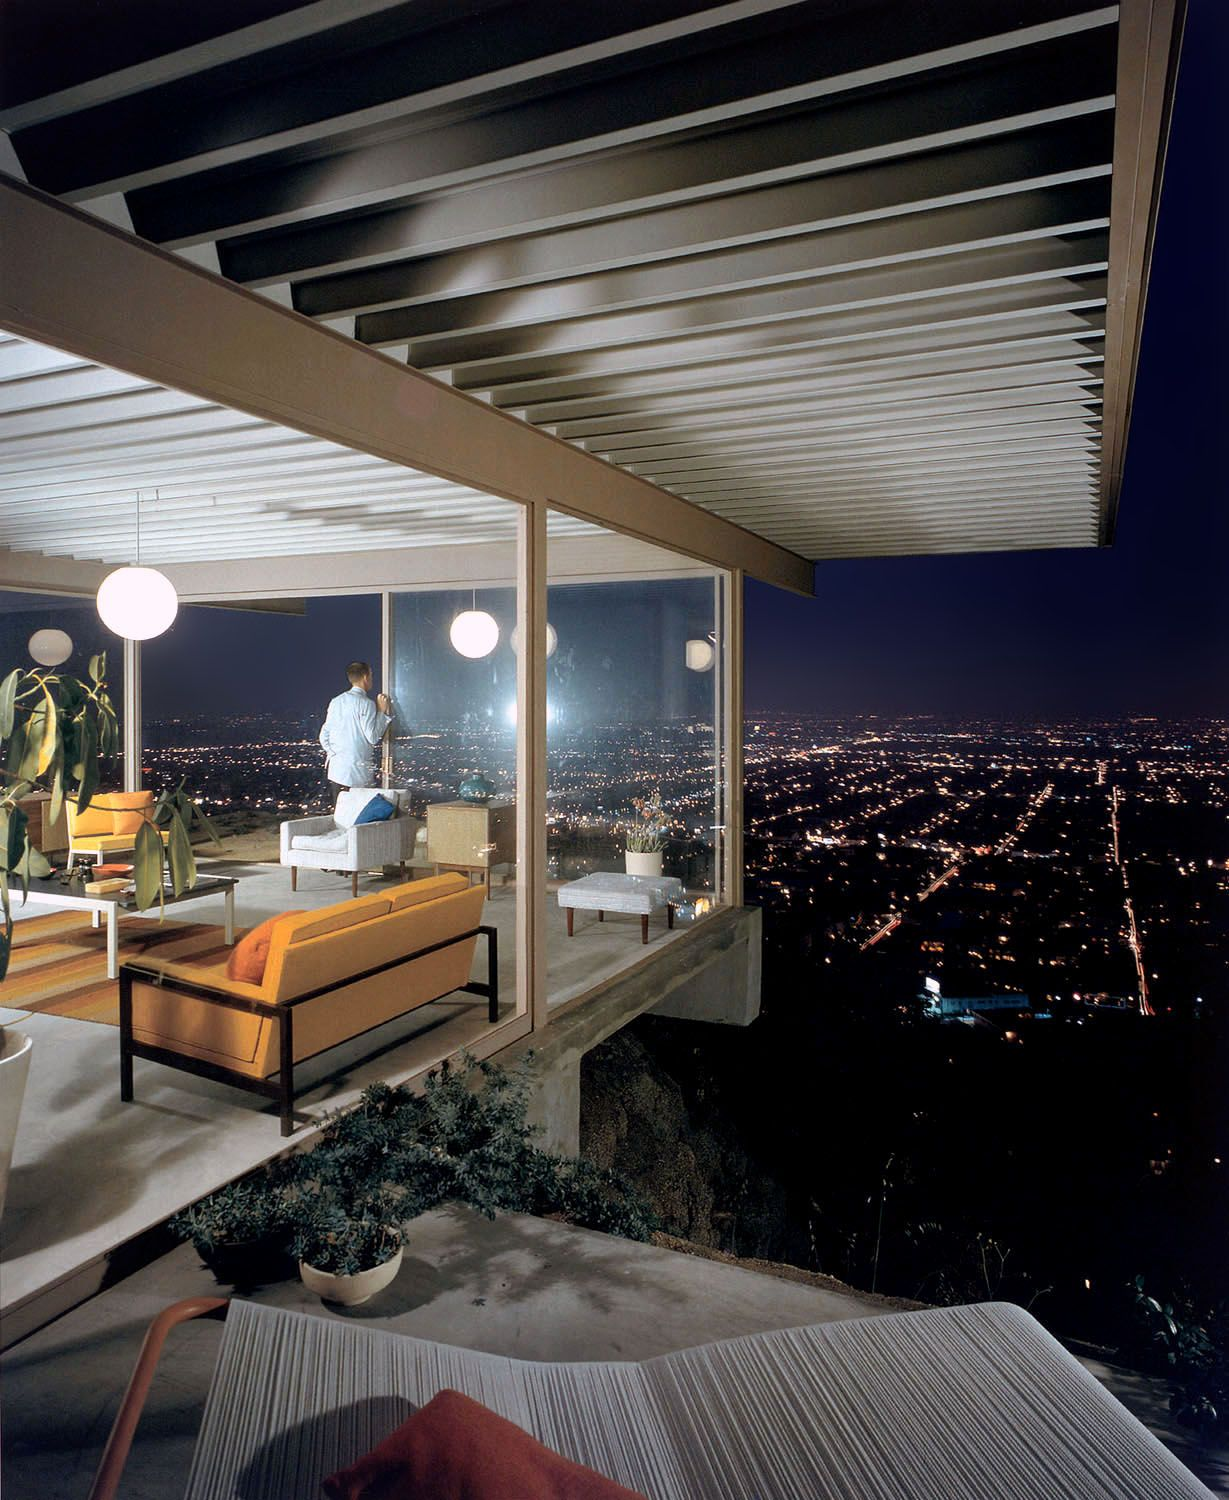 Superb The Stahl House (Case Study House Was Designed By Pierre Koenig In 1959    Julius Shulman, Selected Images Of Case Study House Los Angeles (Stahl House  By ... Amazing Pictures